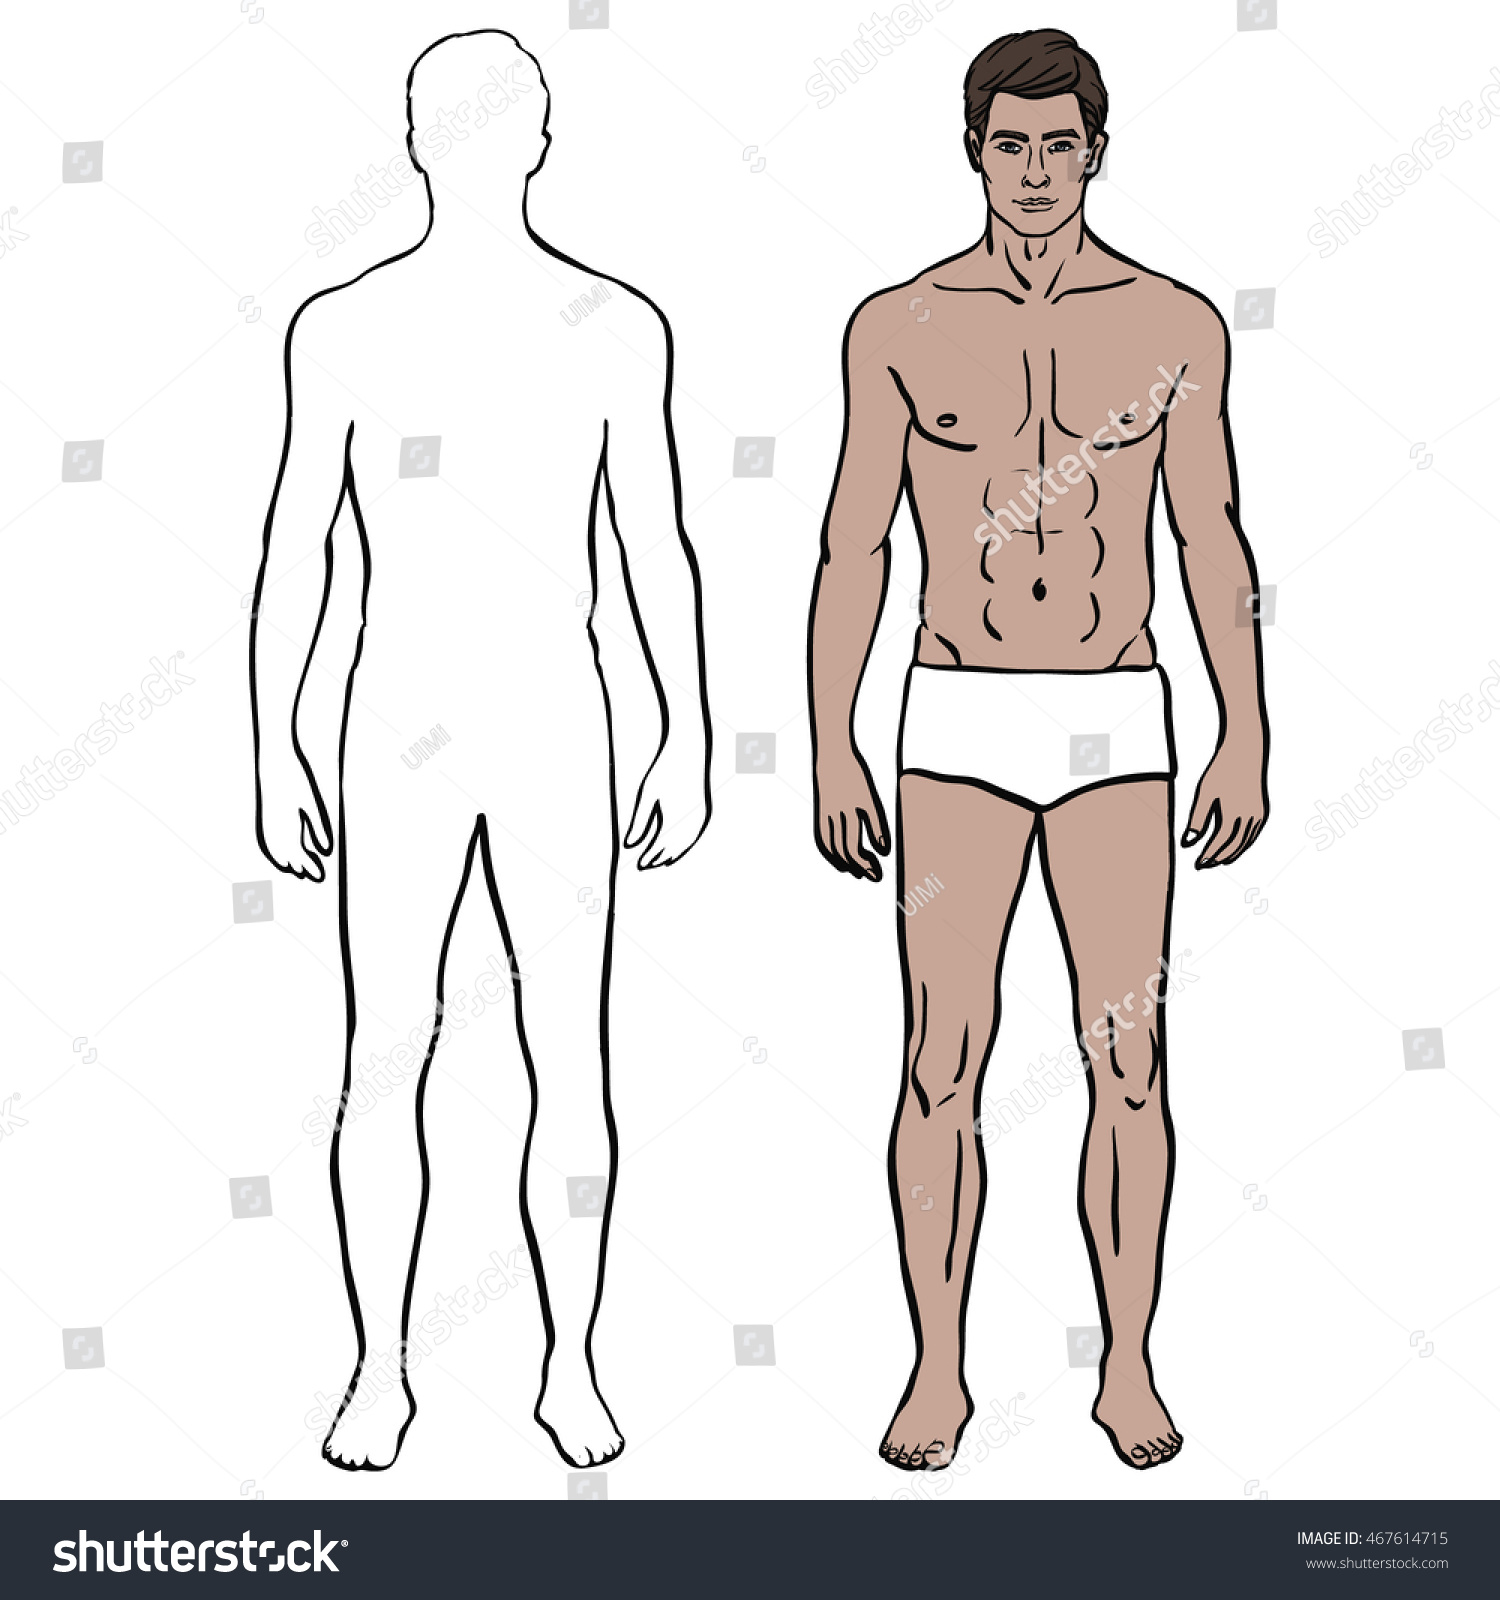 Outline Silhouette Of Male Body Caucasian Model Man In Underwear Colored Template Fit Fashion